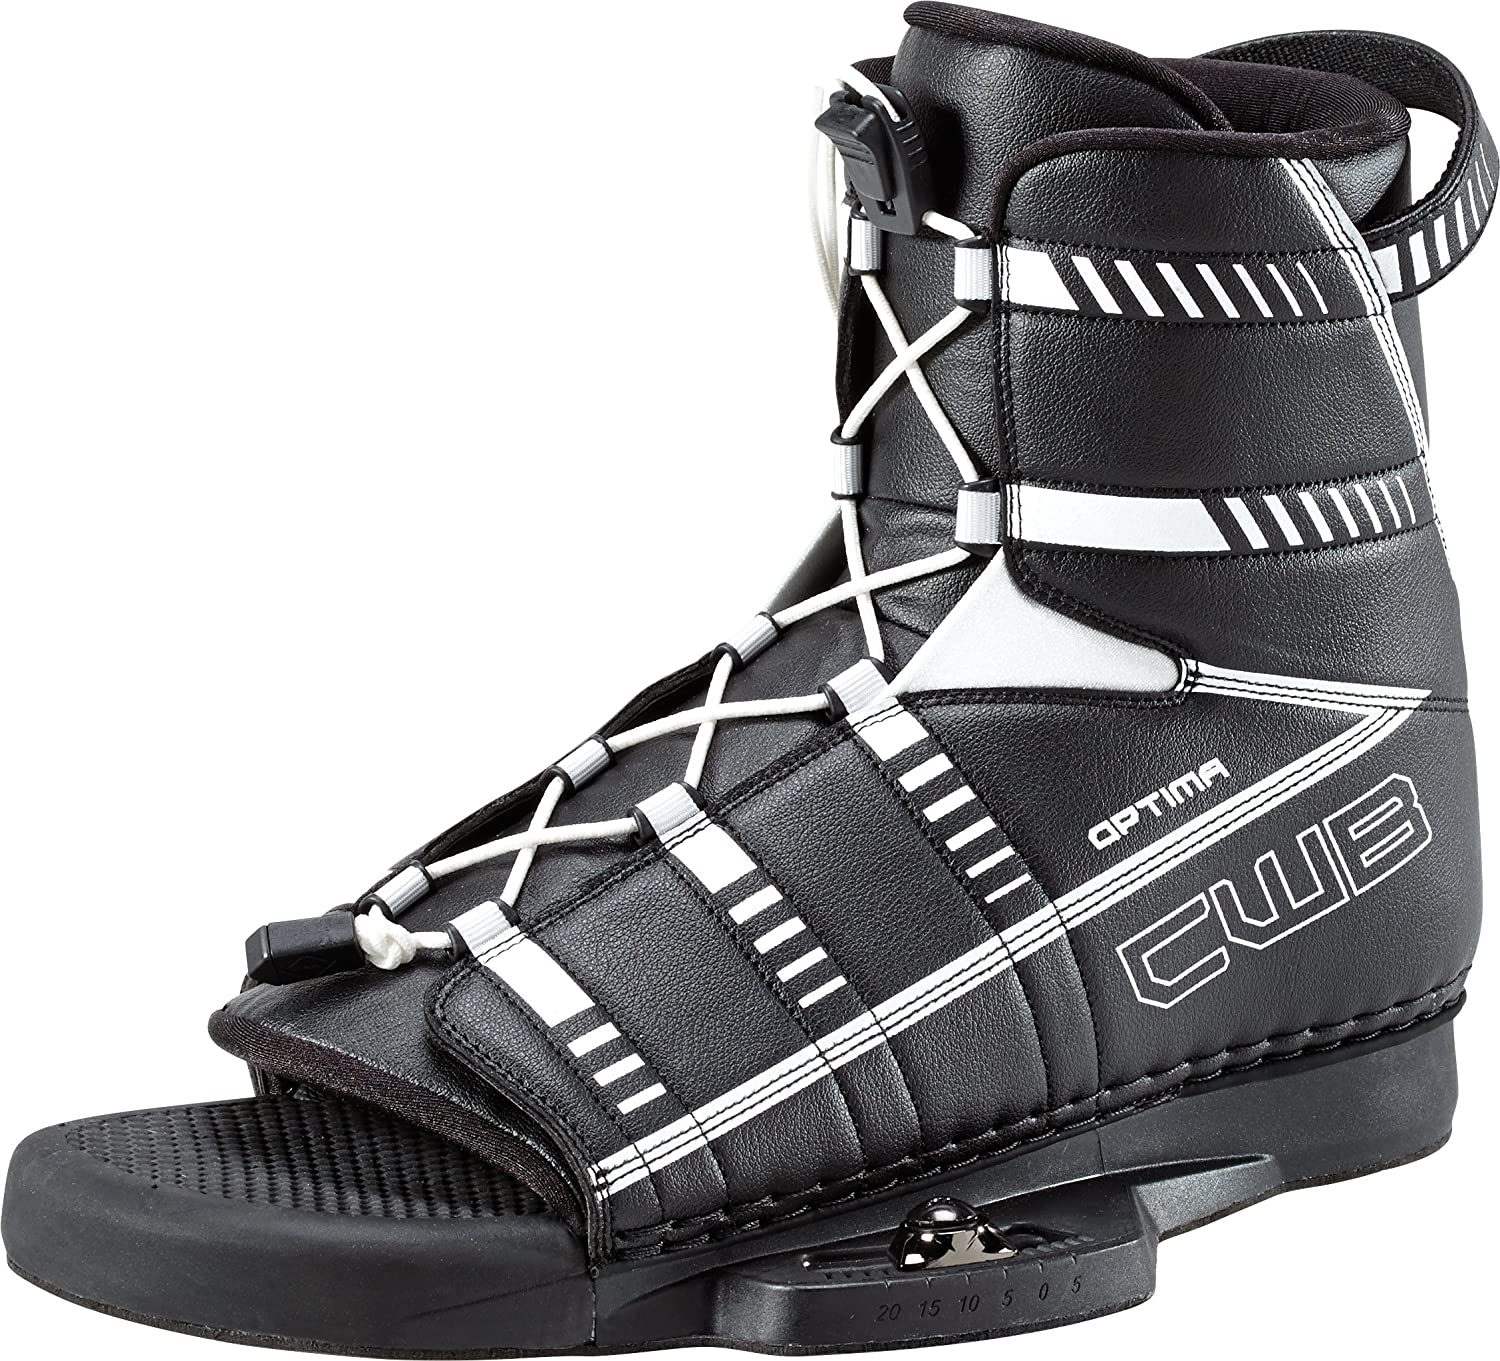 Image of Boat Motors Connelly Skis Optima Wakeboard Boots